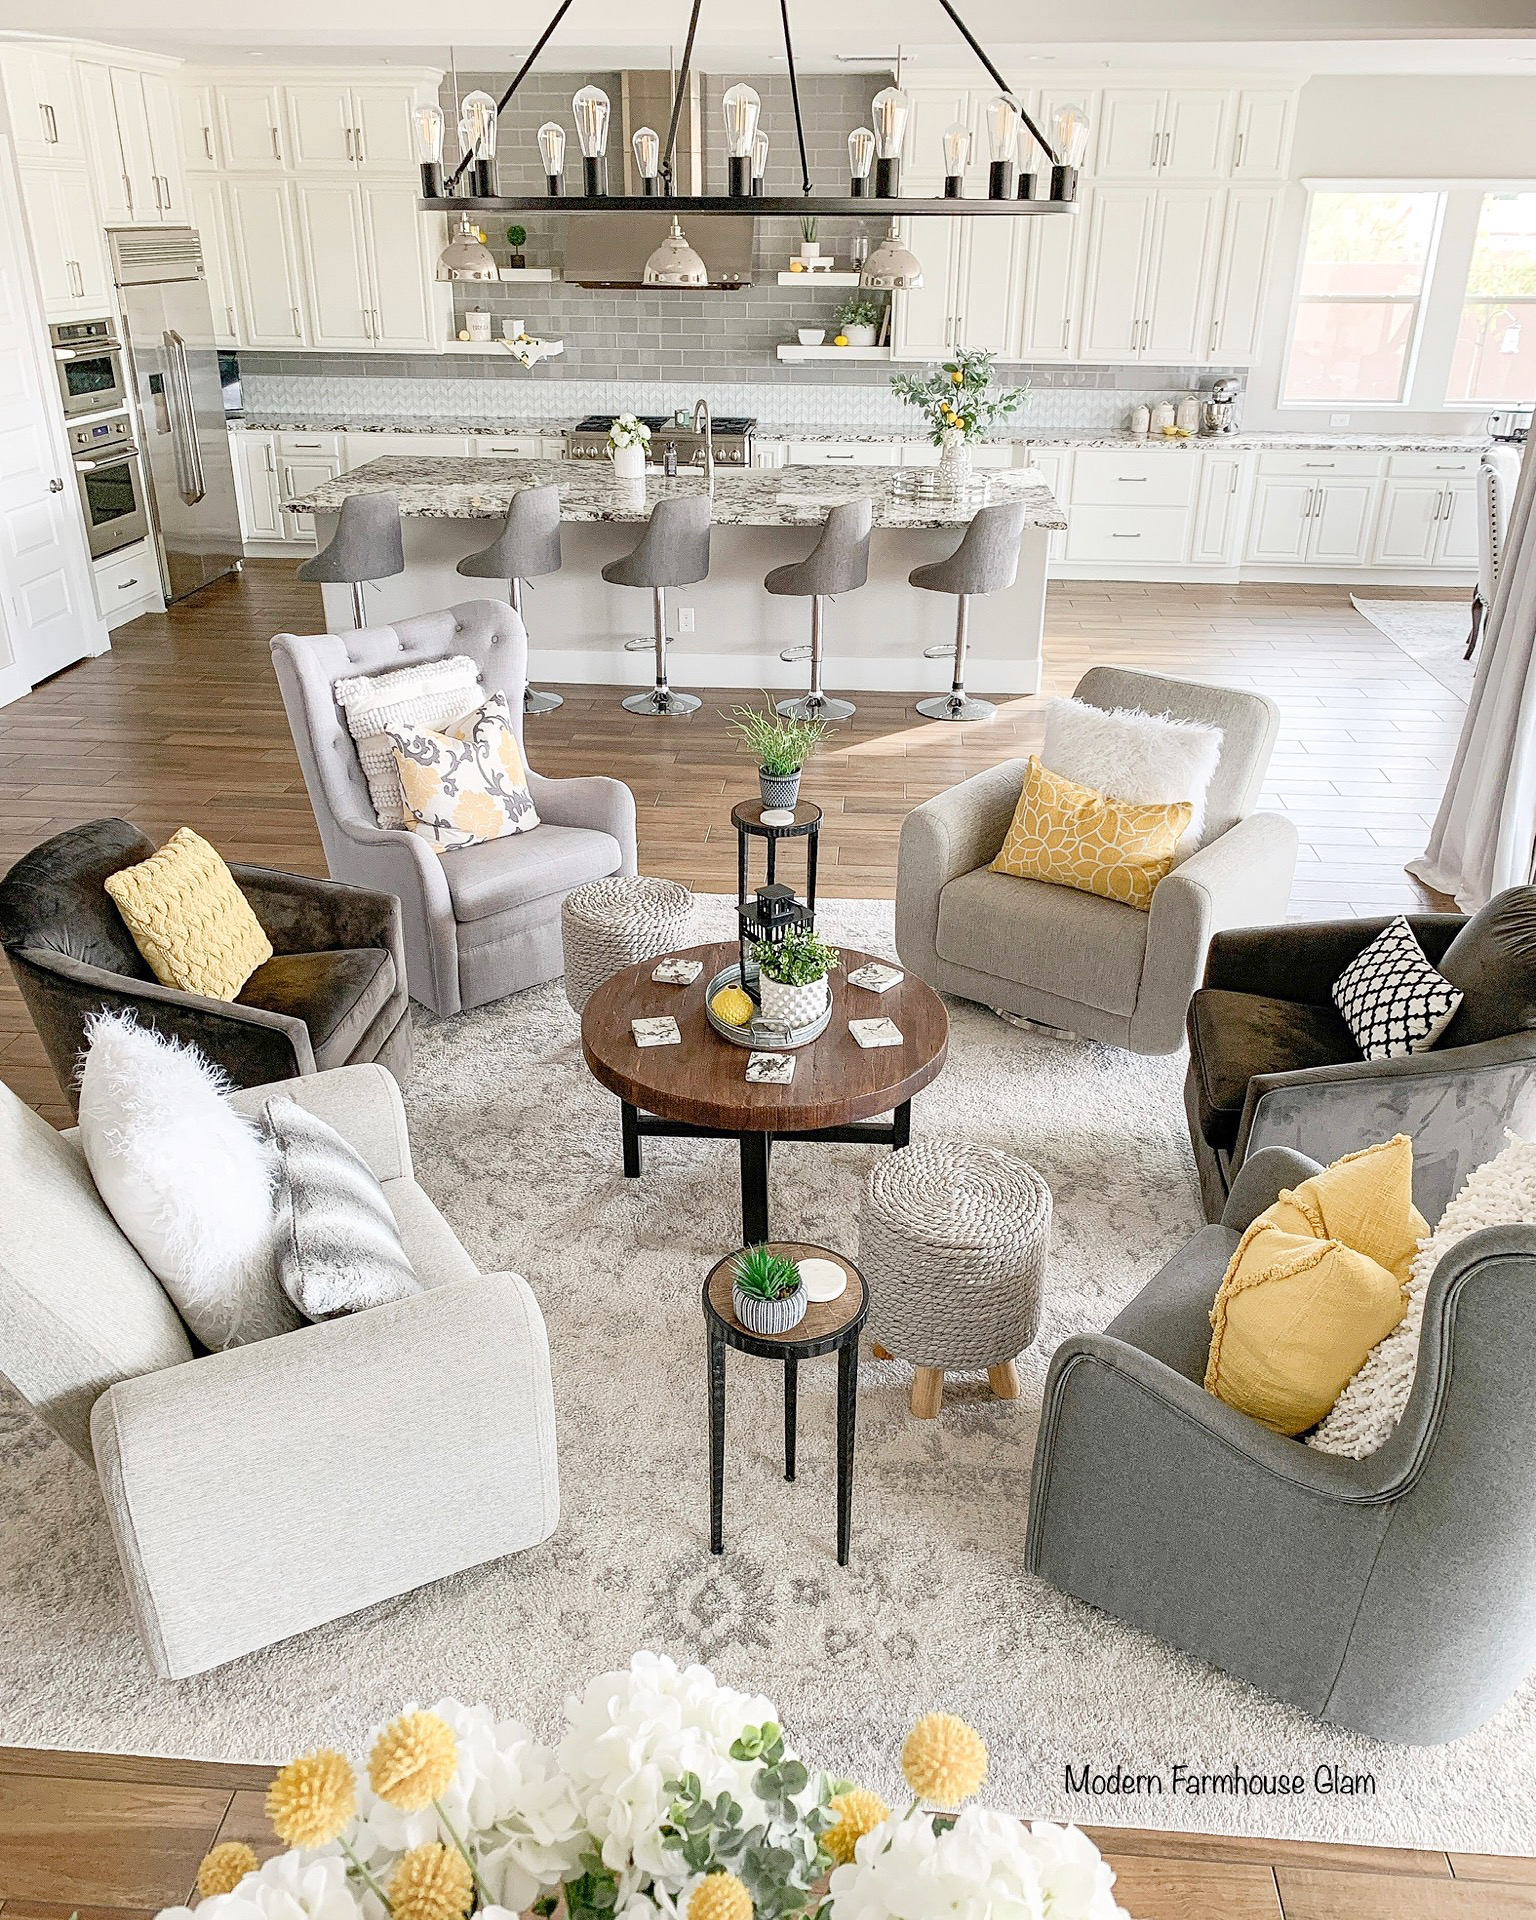 Modern farmhouse glam home decor, mustard yellow and grey colors of the year decor accents